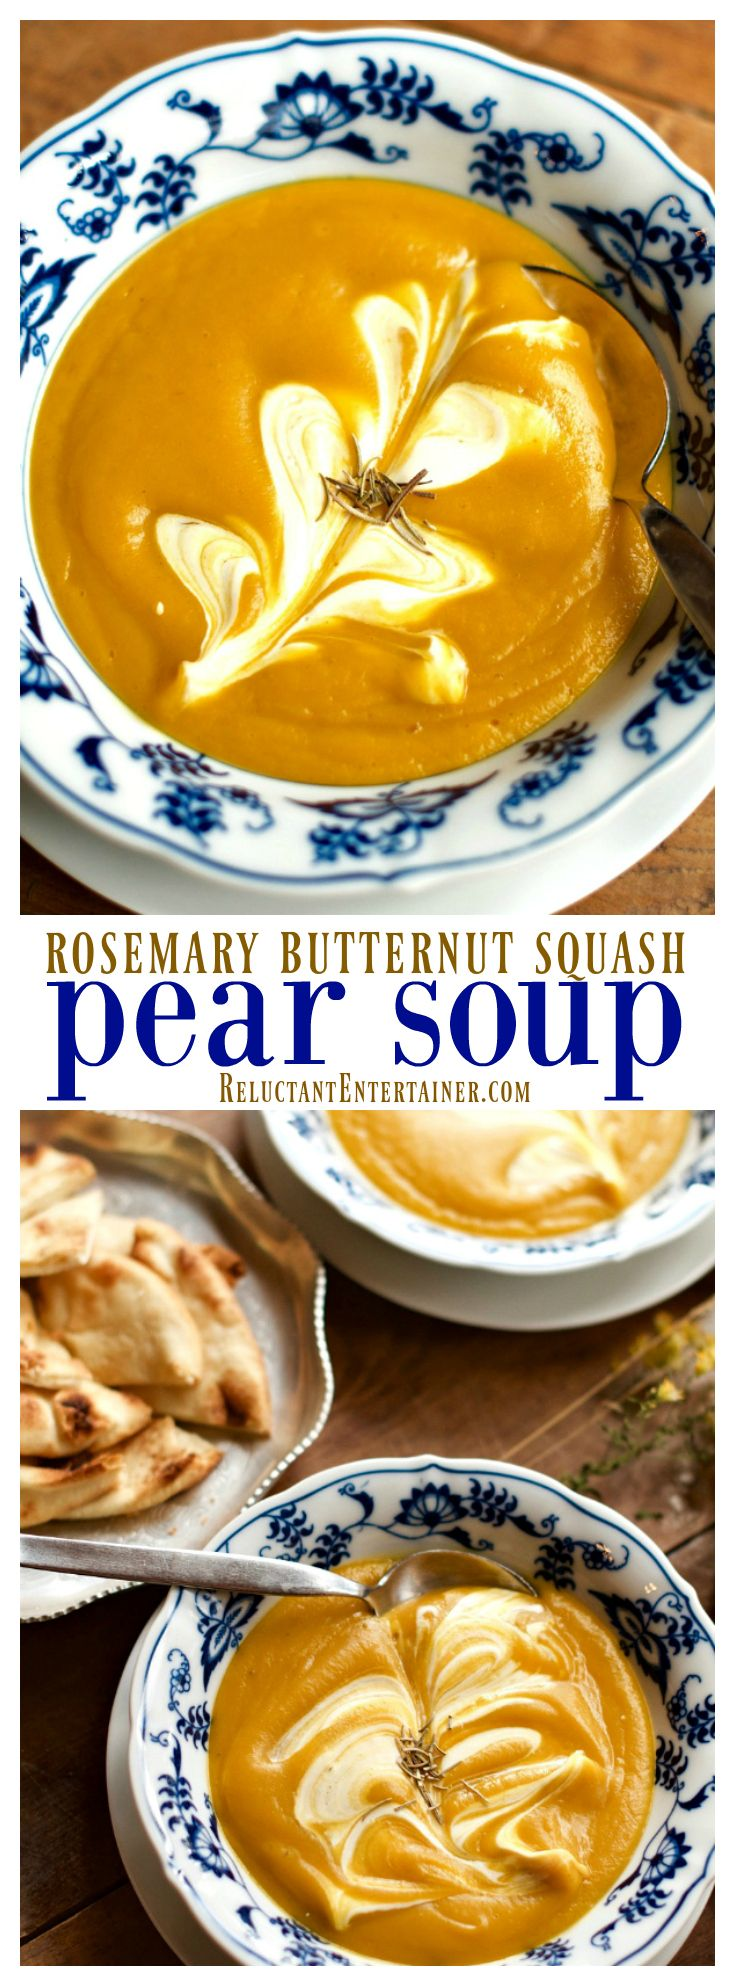 Rosemary Butternut Squash Pear Soup at ReluctantEntertainer.com